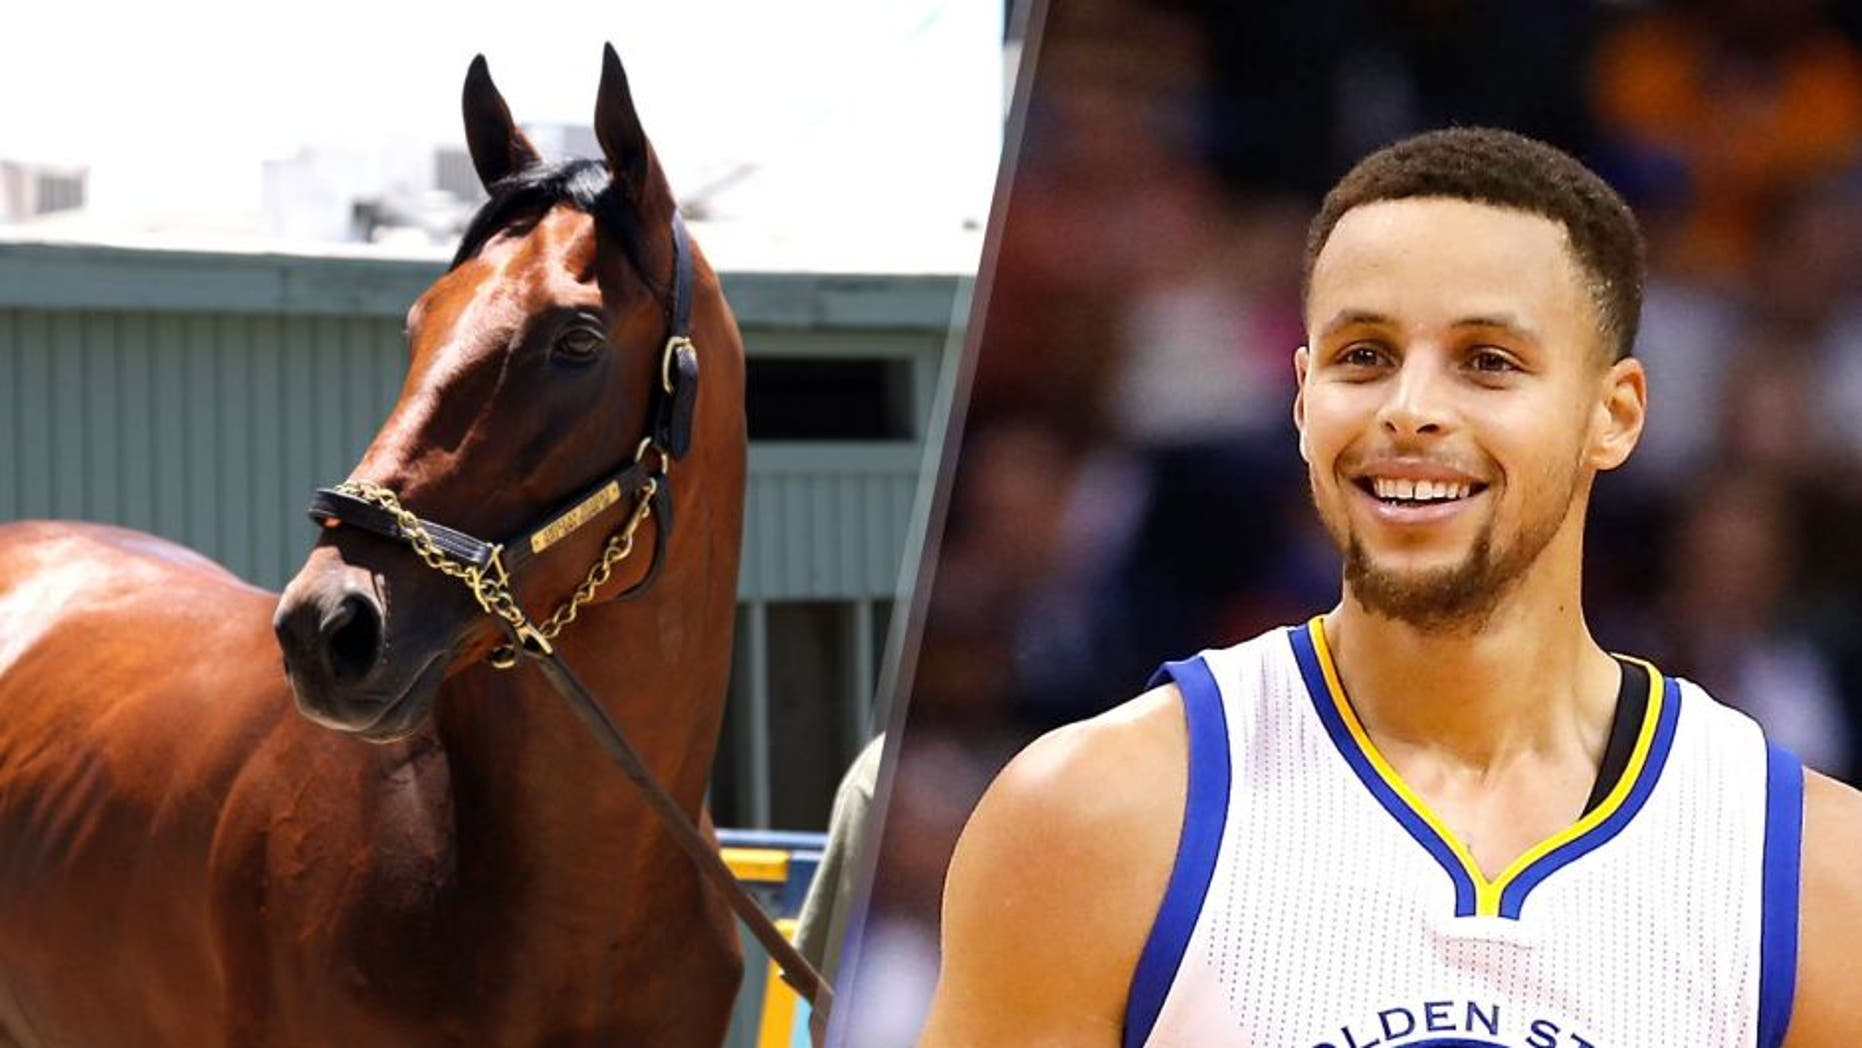 ARCADIA, CA - JUNE 18: American Pharoah in portrait at Santa Anita Park, Race Track at June 18, 2015 (Photo by Cecilia Gustavsson /Getty Images) PHOENIX, AZ - NOVEMBER 27: Stephen Curry #30 of the Golden State Warriors during the NBA game against the Phoenix Suns at Talking Stick Resort Arena on November 27, 2015 in Phoenix, Arizona. The Warriors defeated the Suns 135-116. NOTE TO USER: User expressly acknowledges and agrees that, by downloading and or using this photograph, User is consenting to the terms and conditions of the Getty Images License Agreement. (Photo by Christian Petersen/Getty Images)